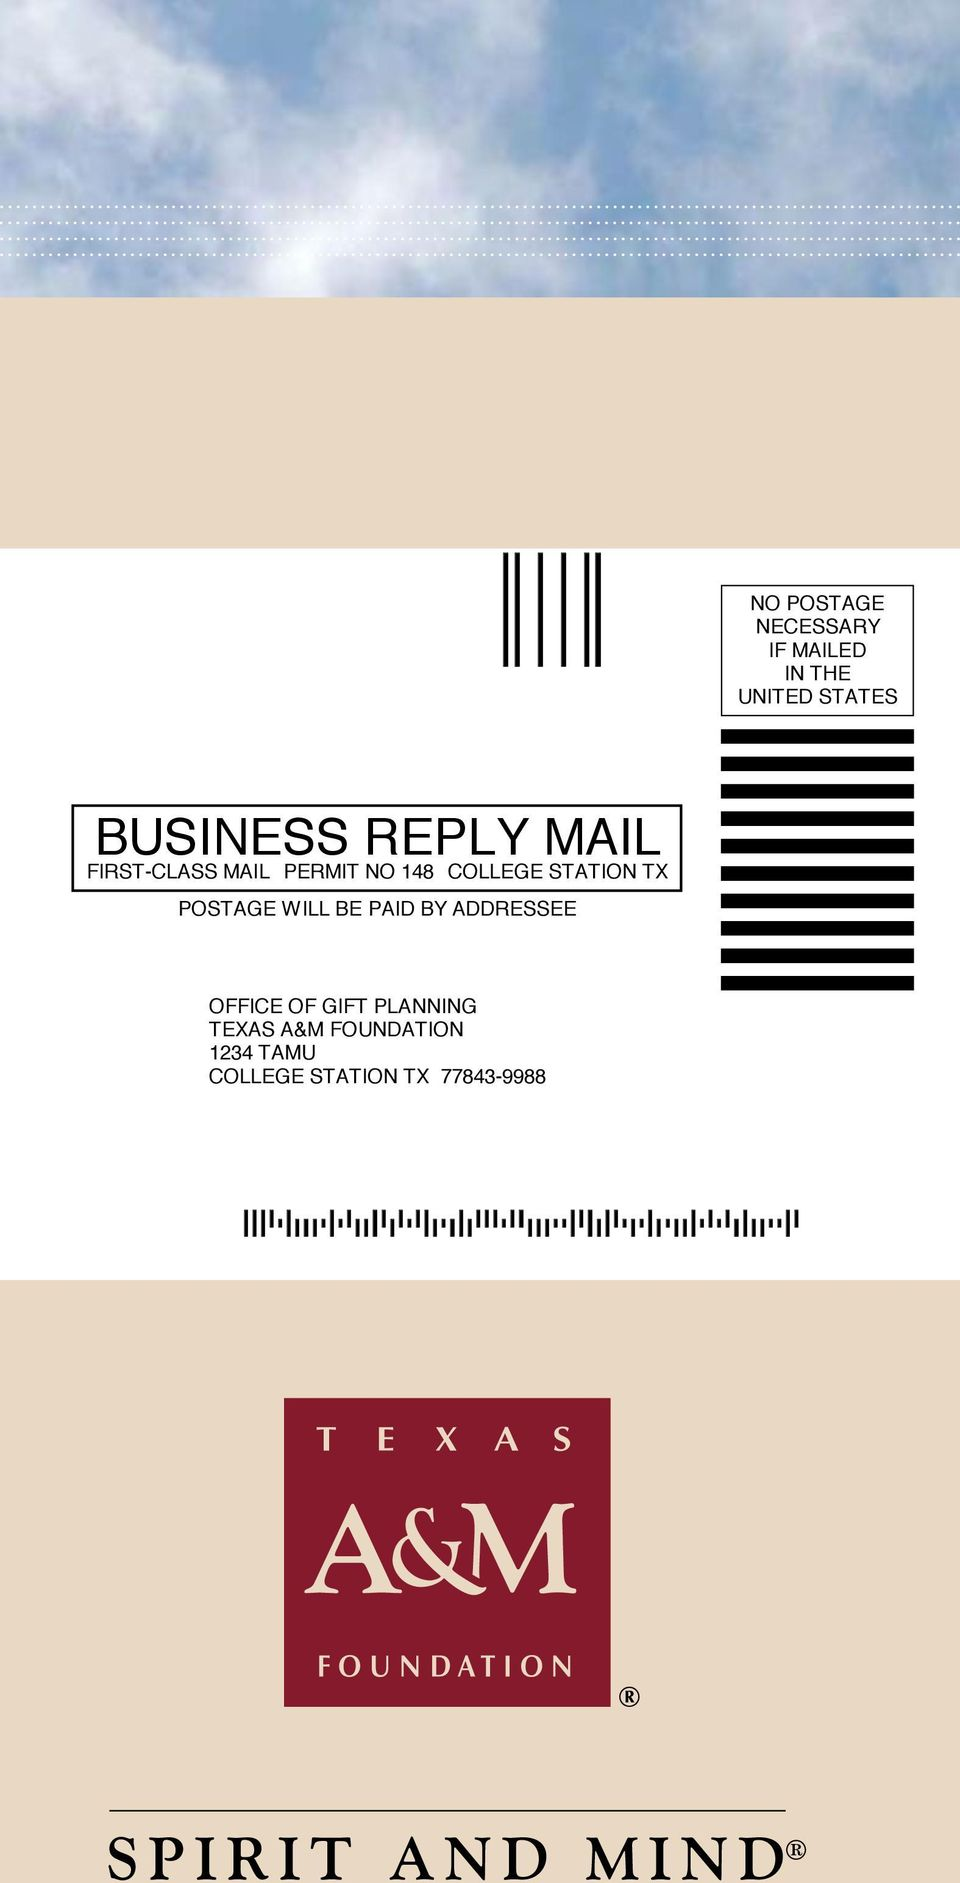 POSTAGE WILL BE PAID BY ADDRESSEE OFFICE OF GIFT PLANNING TEXAS